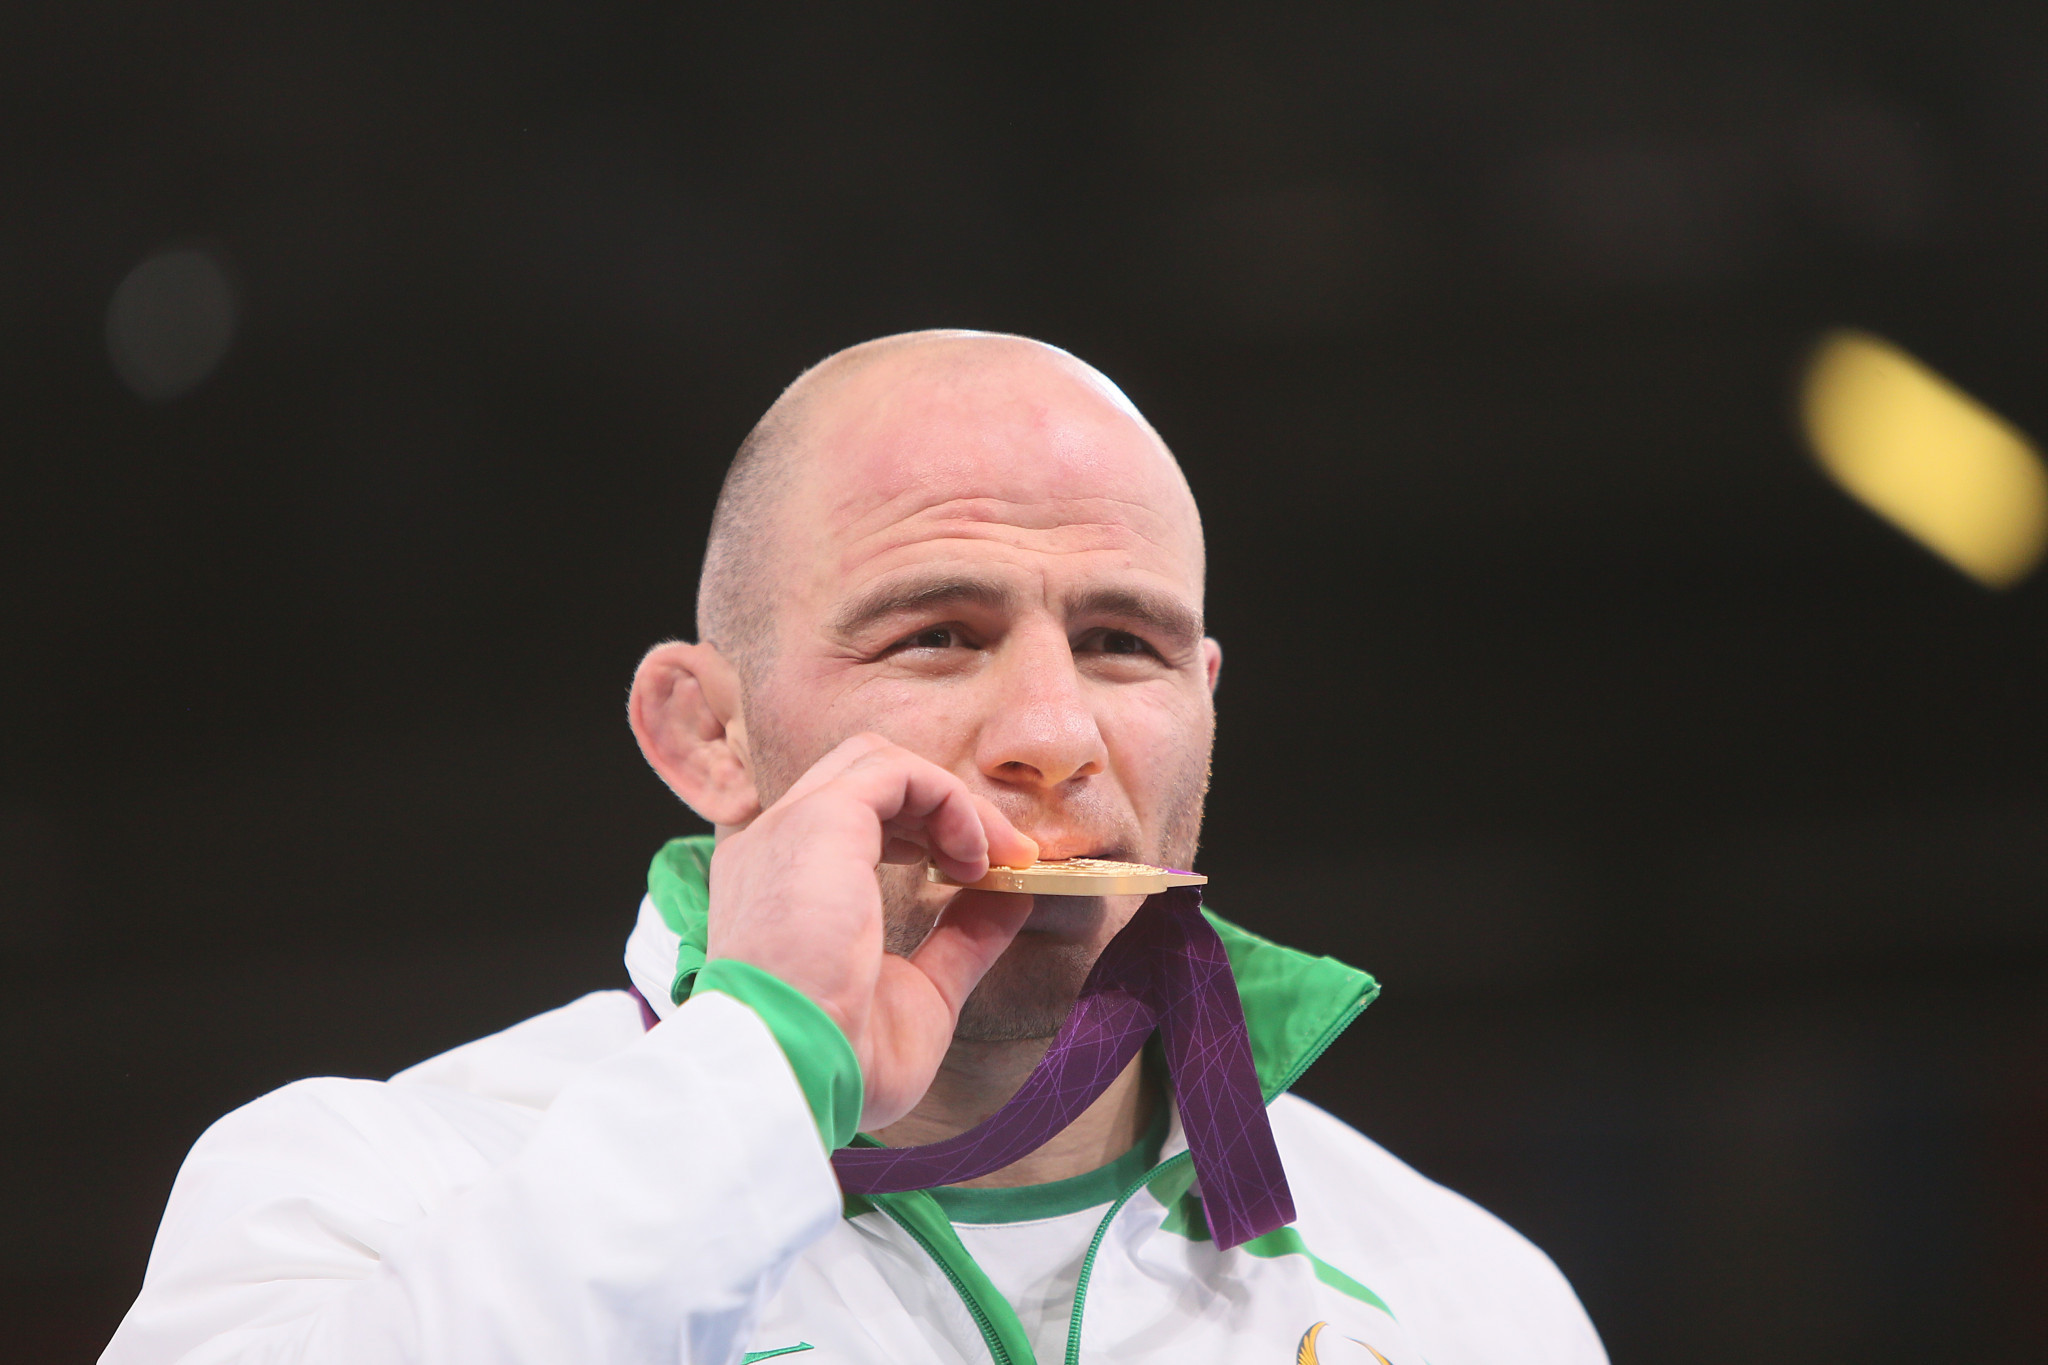 Taymazov stripped of second Olympic gold medal for doping at London 2012